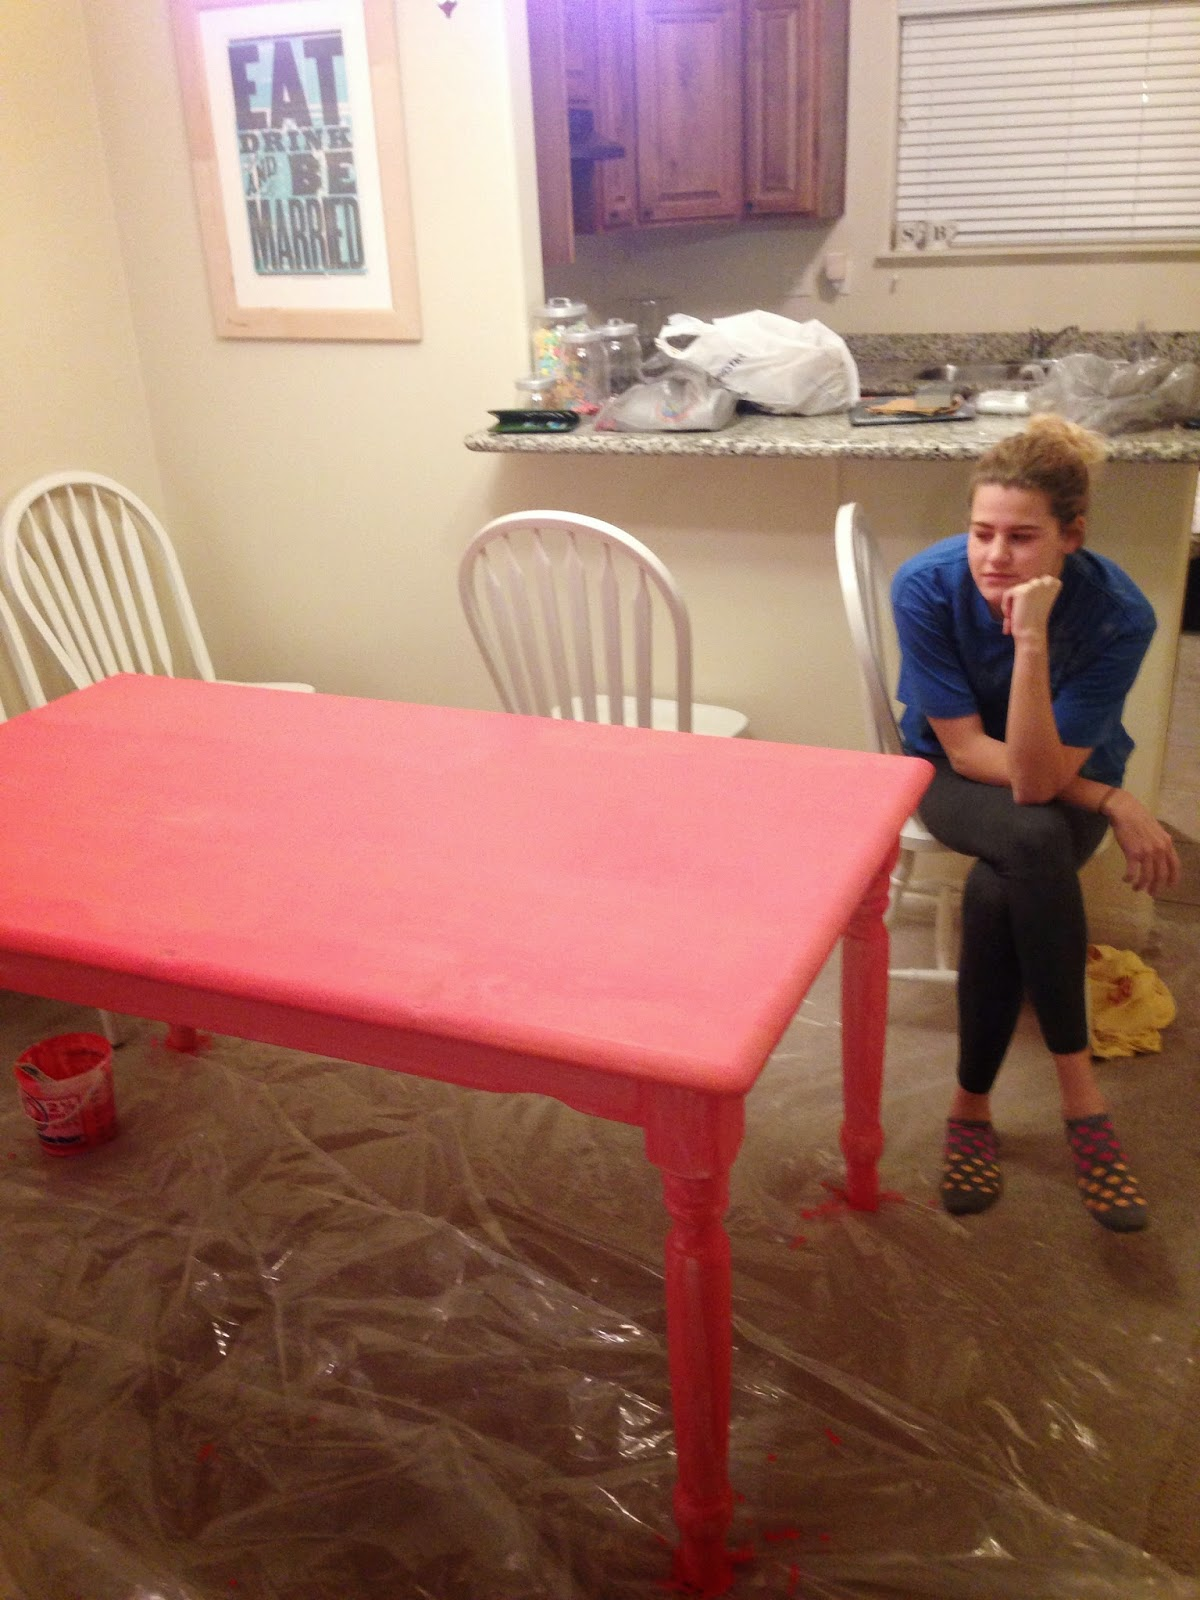 A Pink Kitchen Table | Miss Brimley